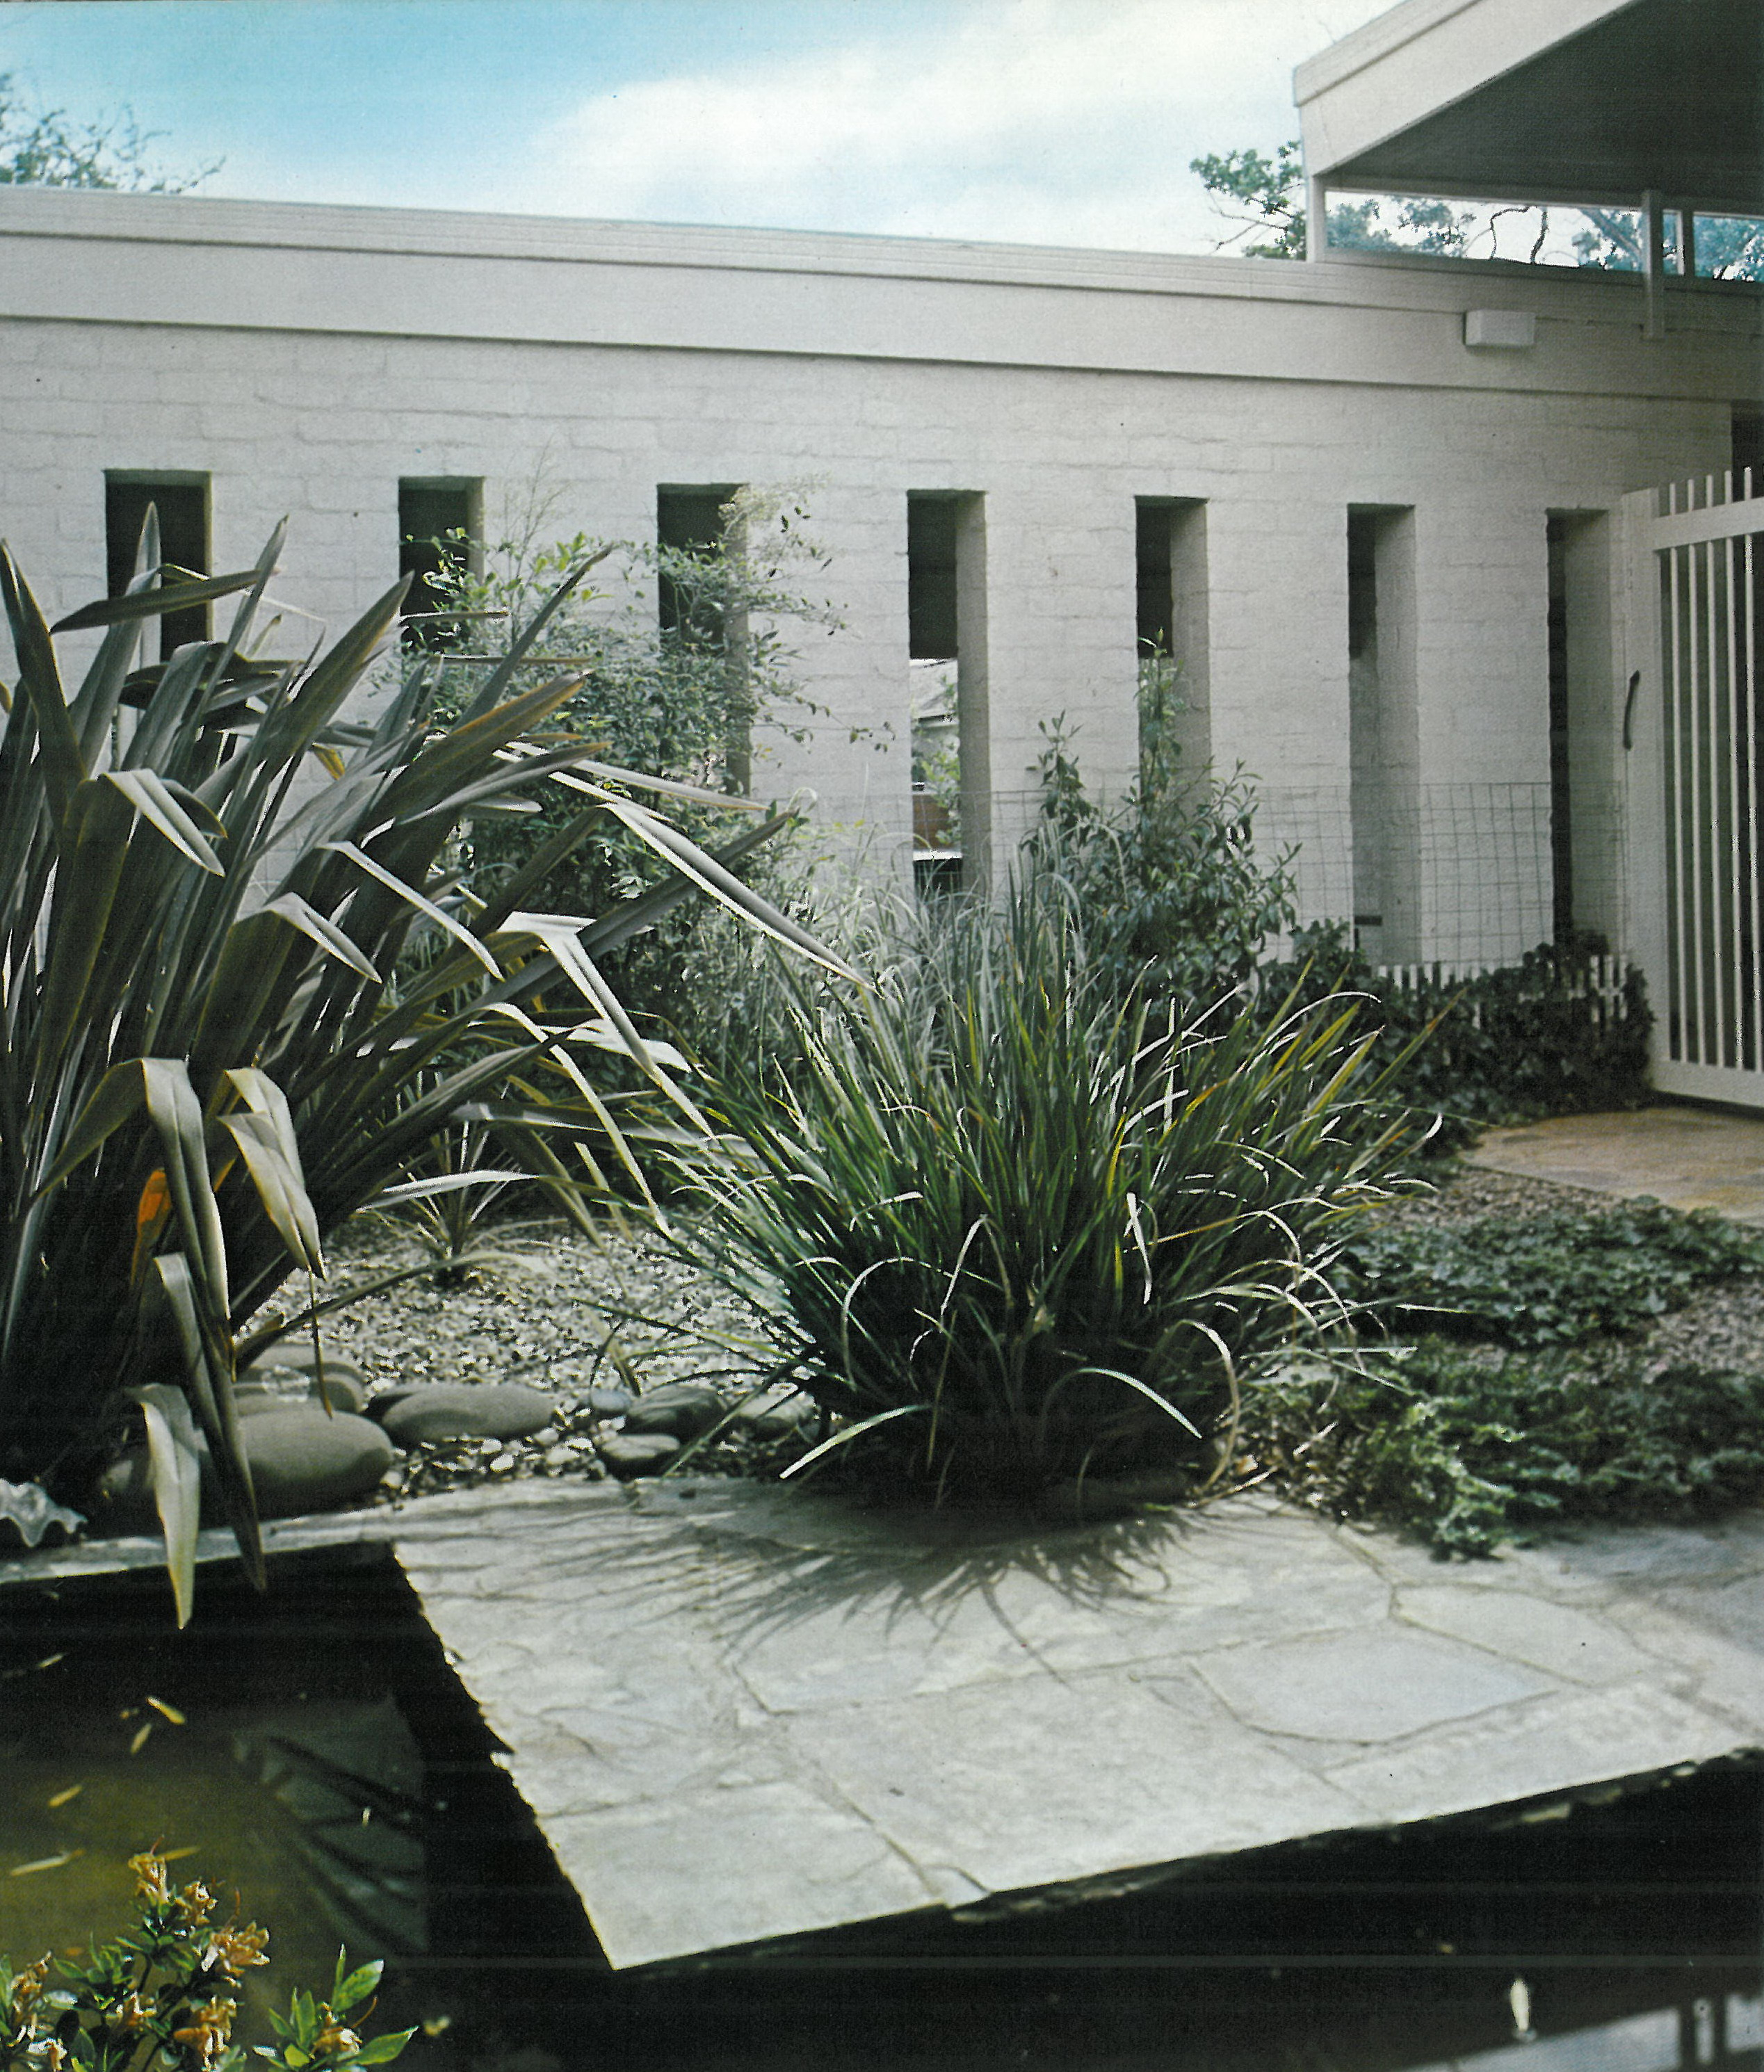 Iconic australian landscape architects ellis stones for Courtyard landscaping australia